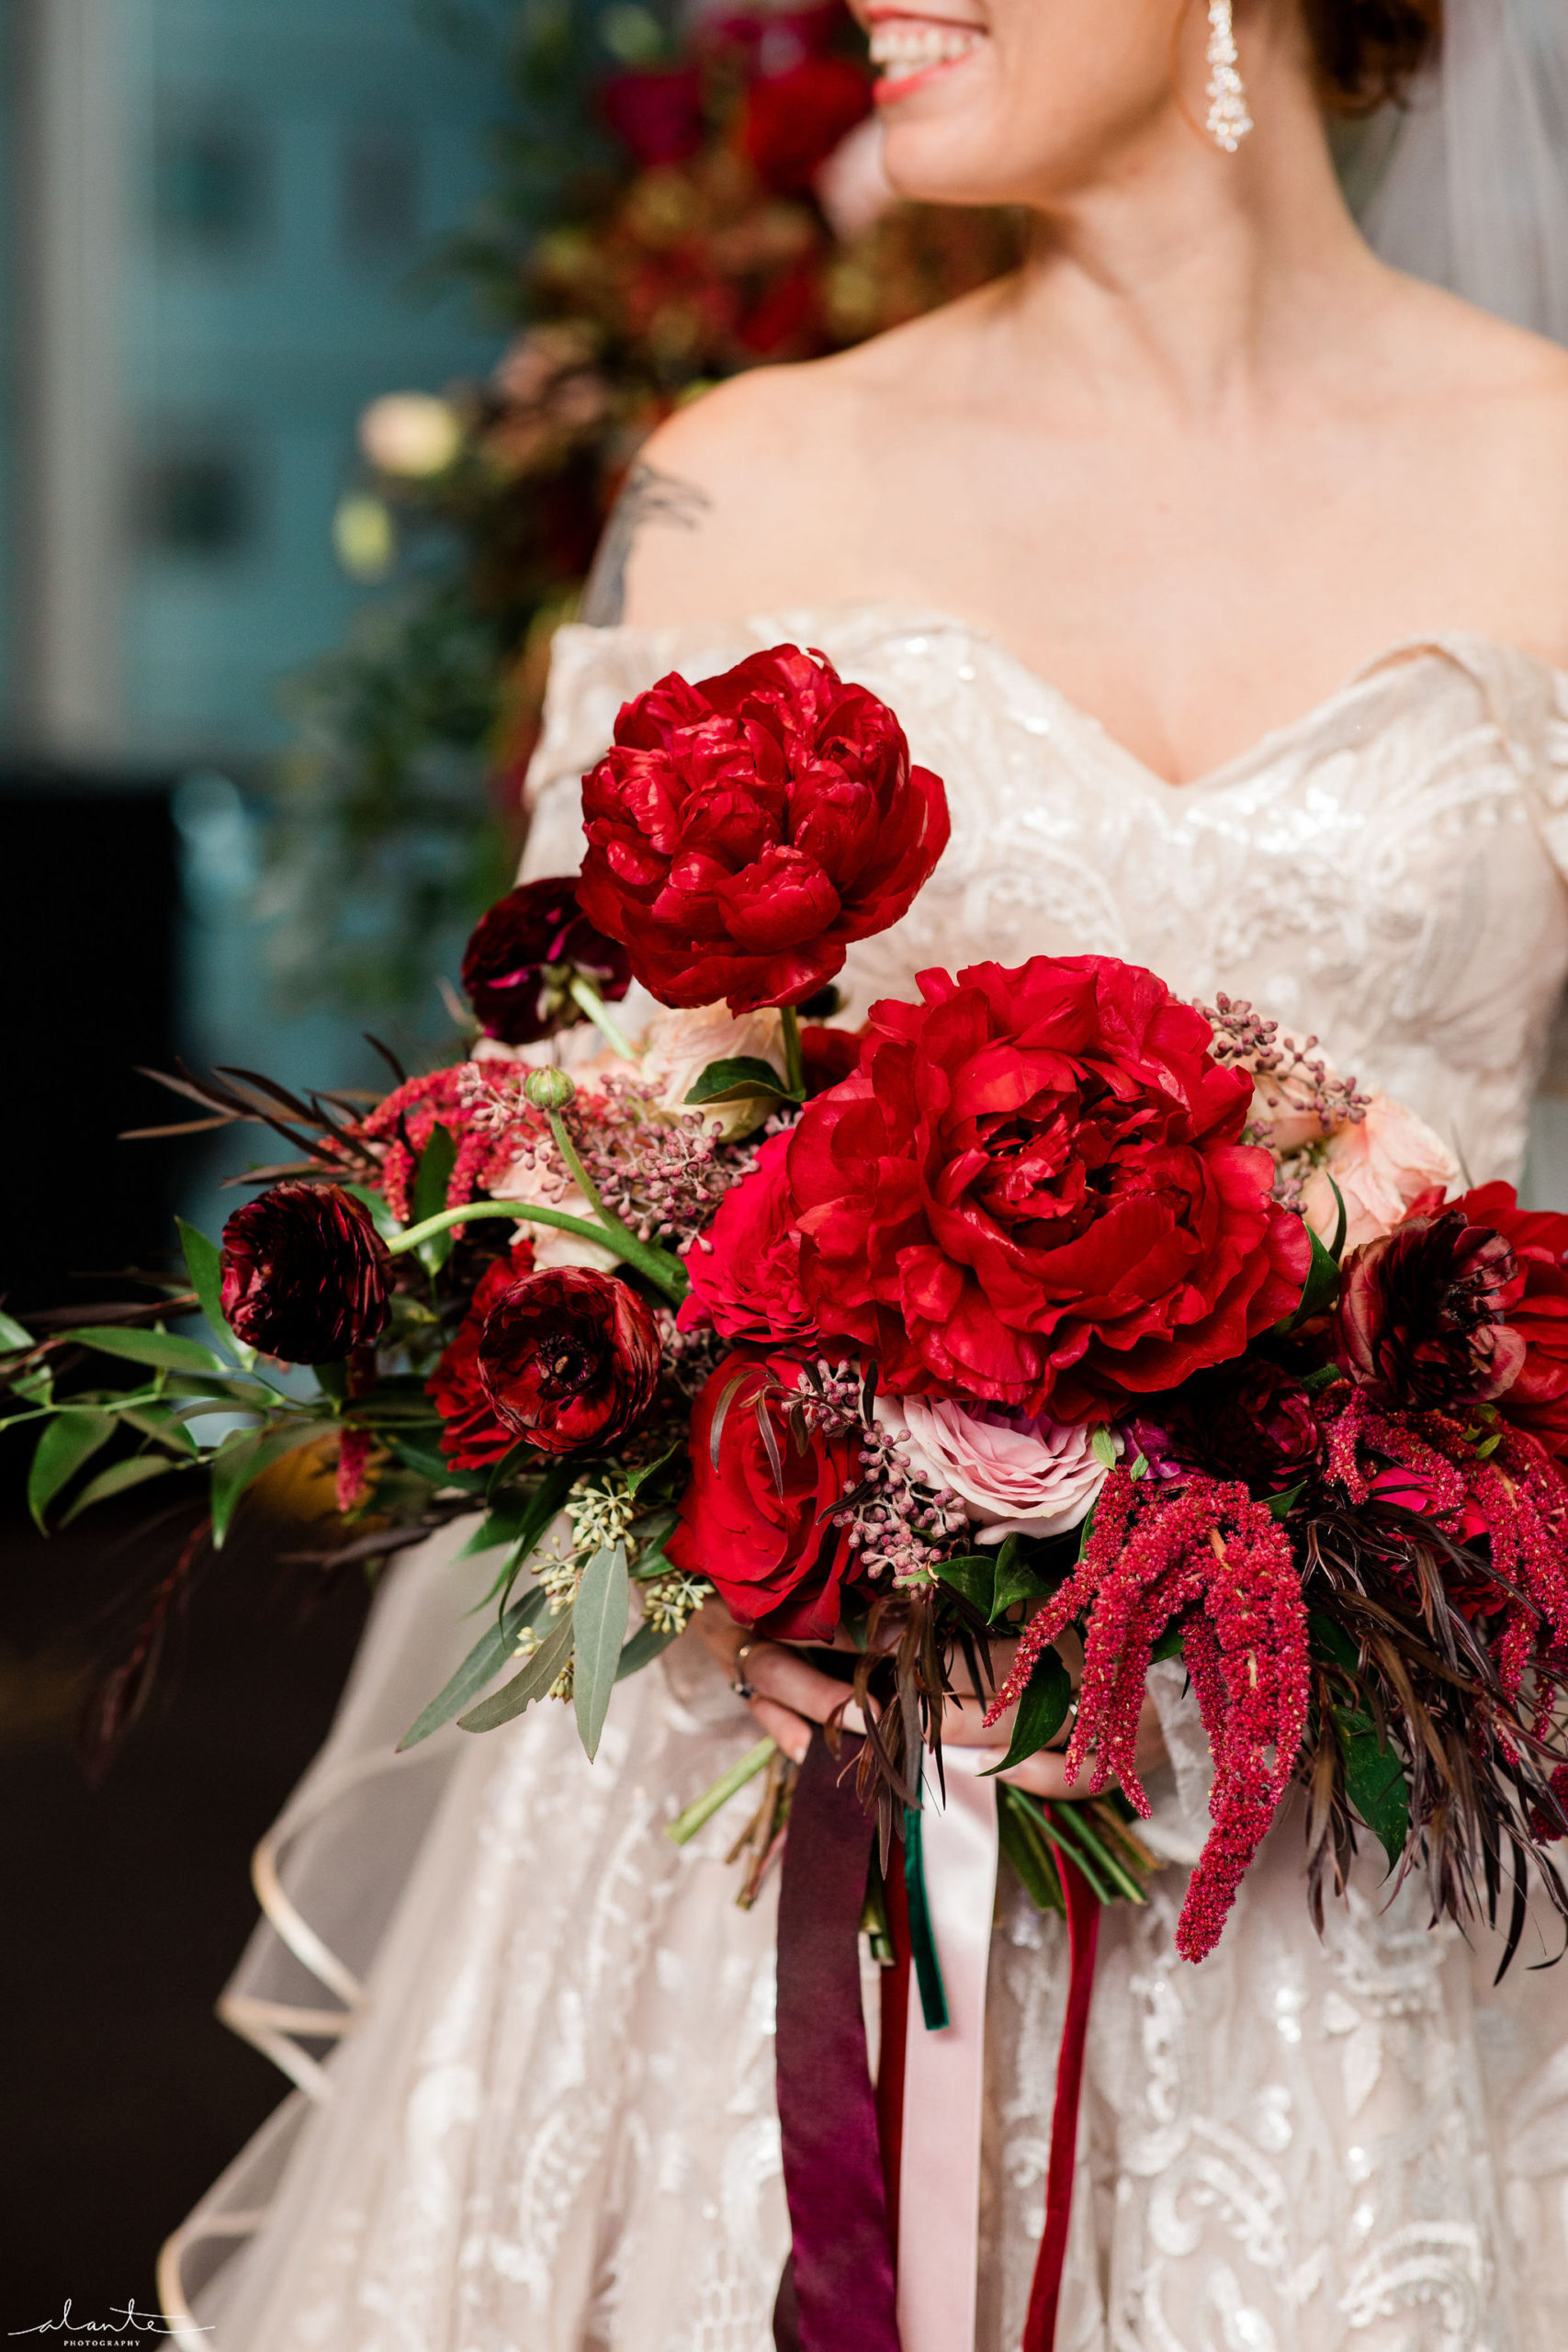 Red peonies, burgundy ranunculus, and seeded eucalyptus are just a few flowers that make up this striking winter bridal bouquet by Flora Nova Design Seattle